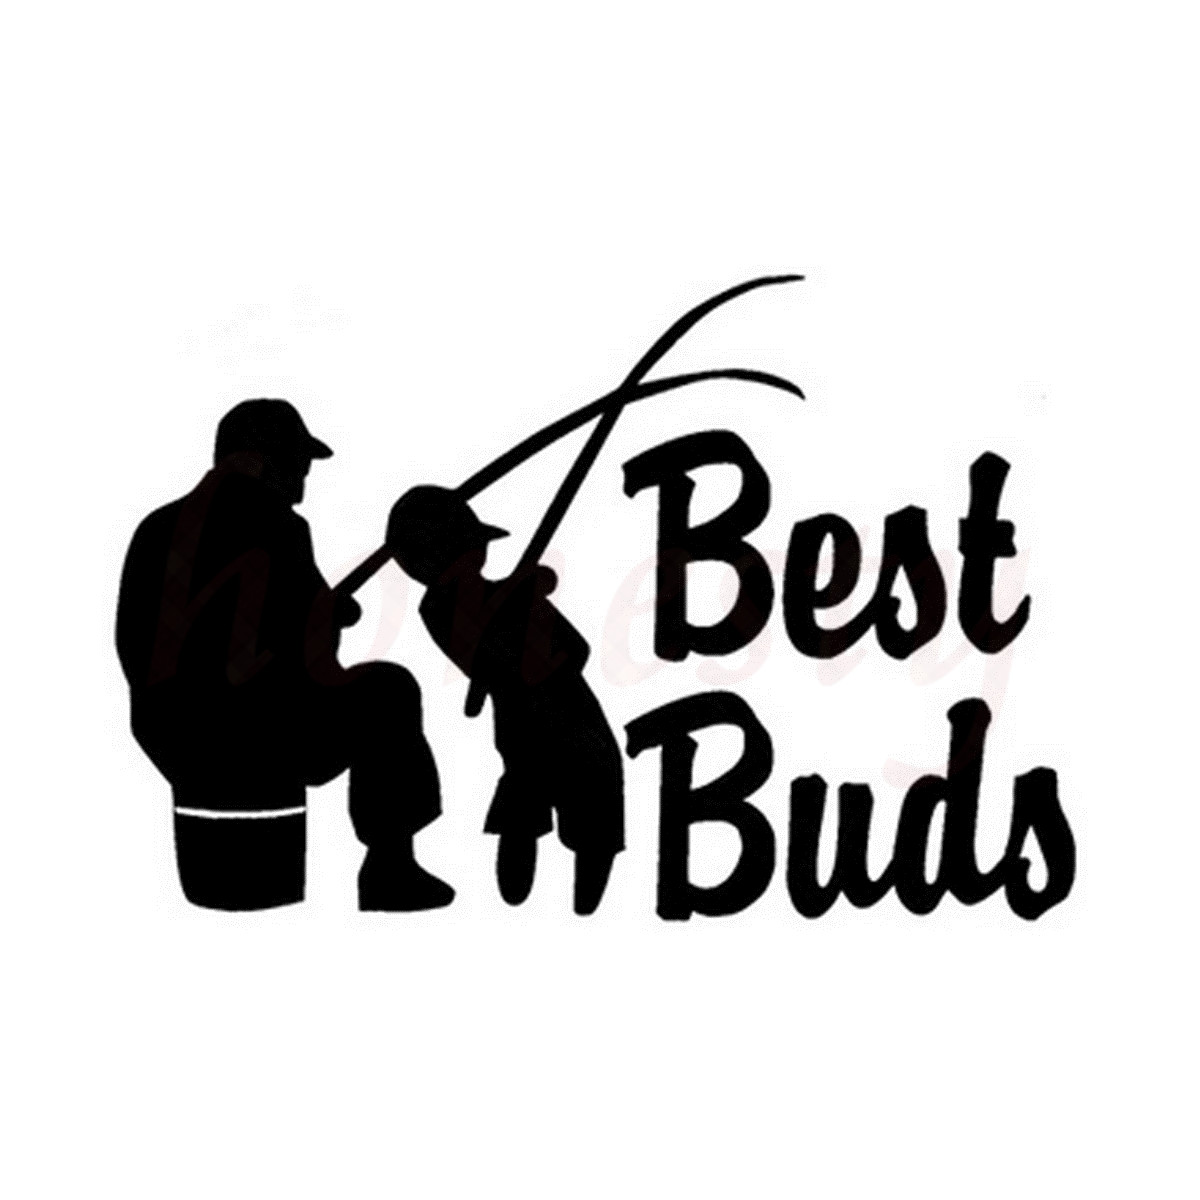 Vinyl Decal Sticker Best Buds Fishing Wall Home Glass Window Door Laptop Car Sticker Motorcycle Decorating Sticker 16.8cmX11.4cm